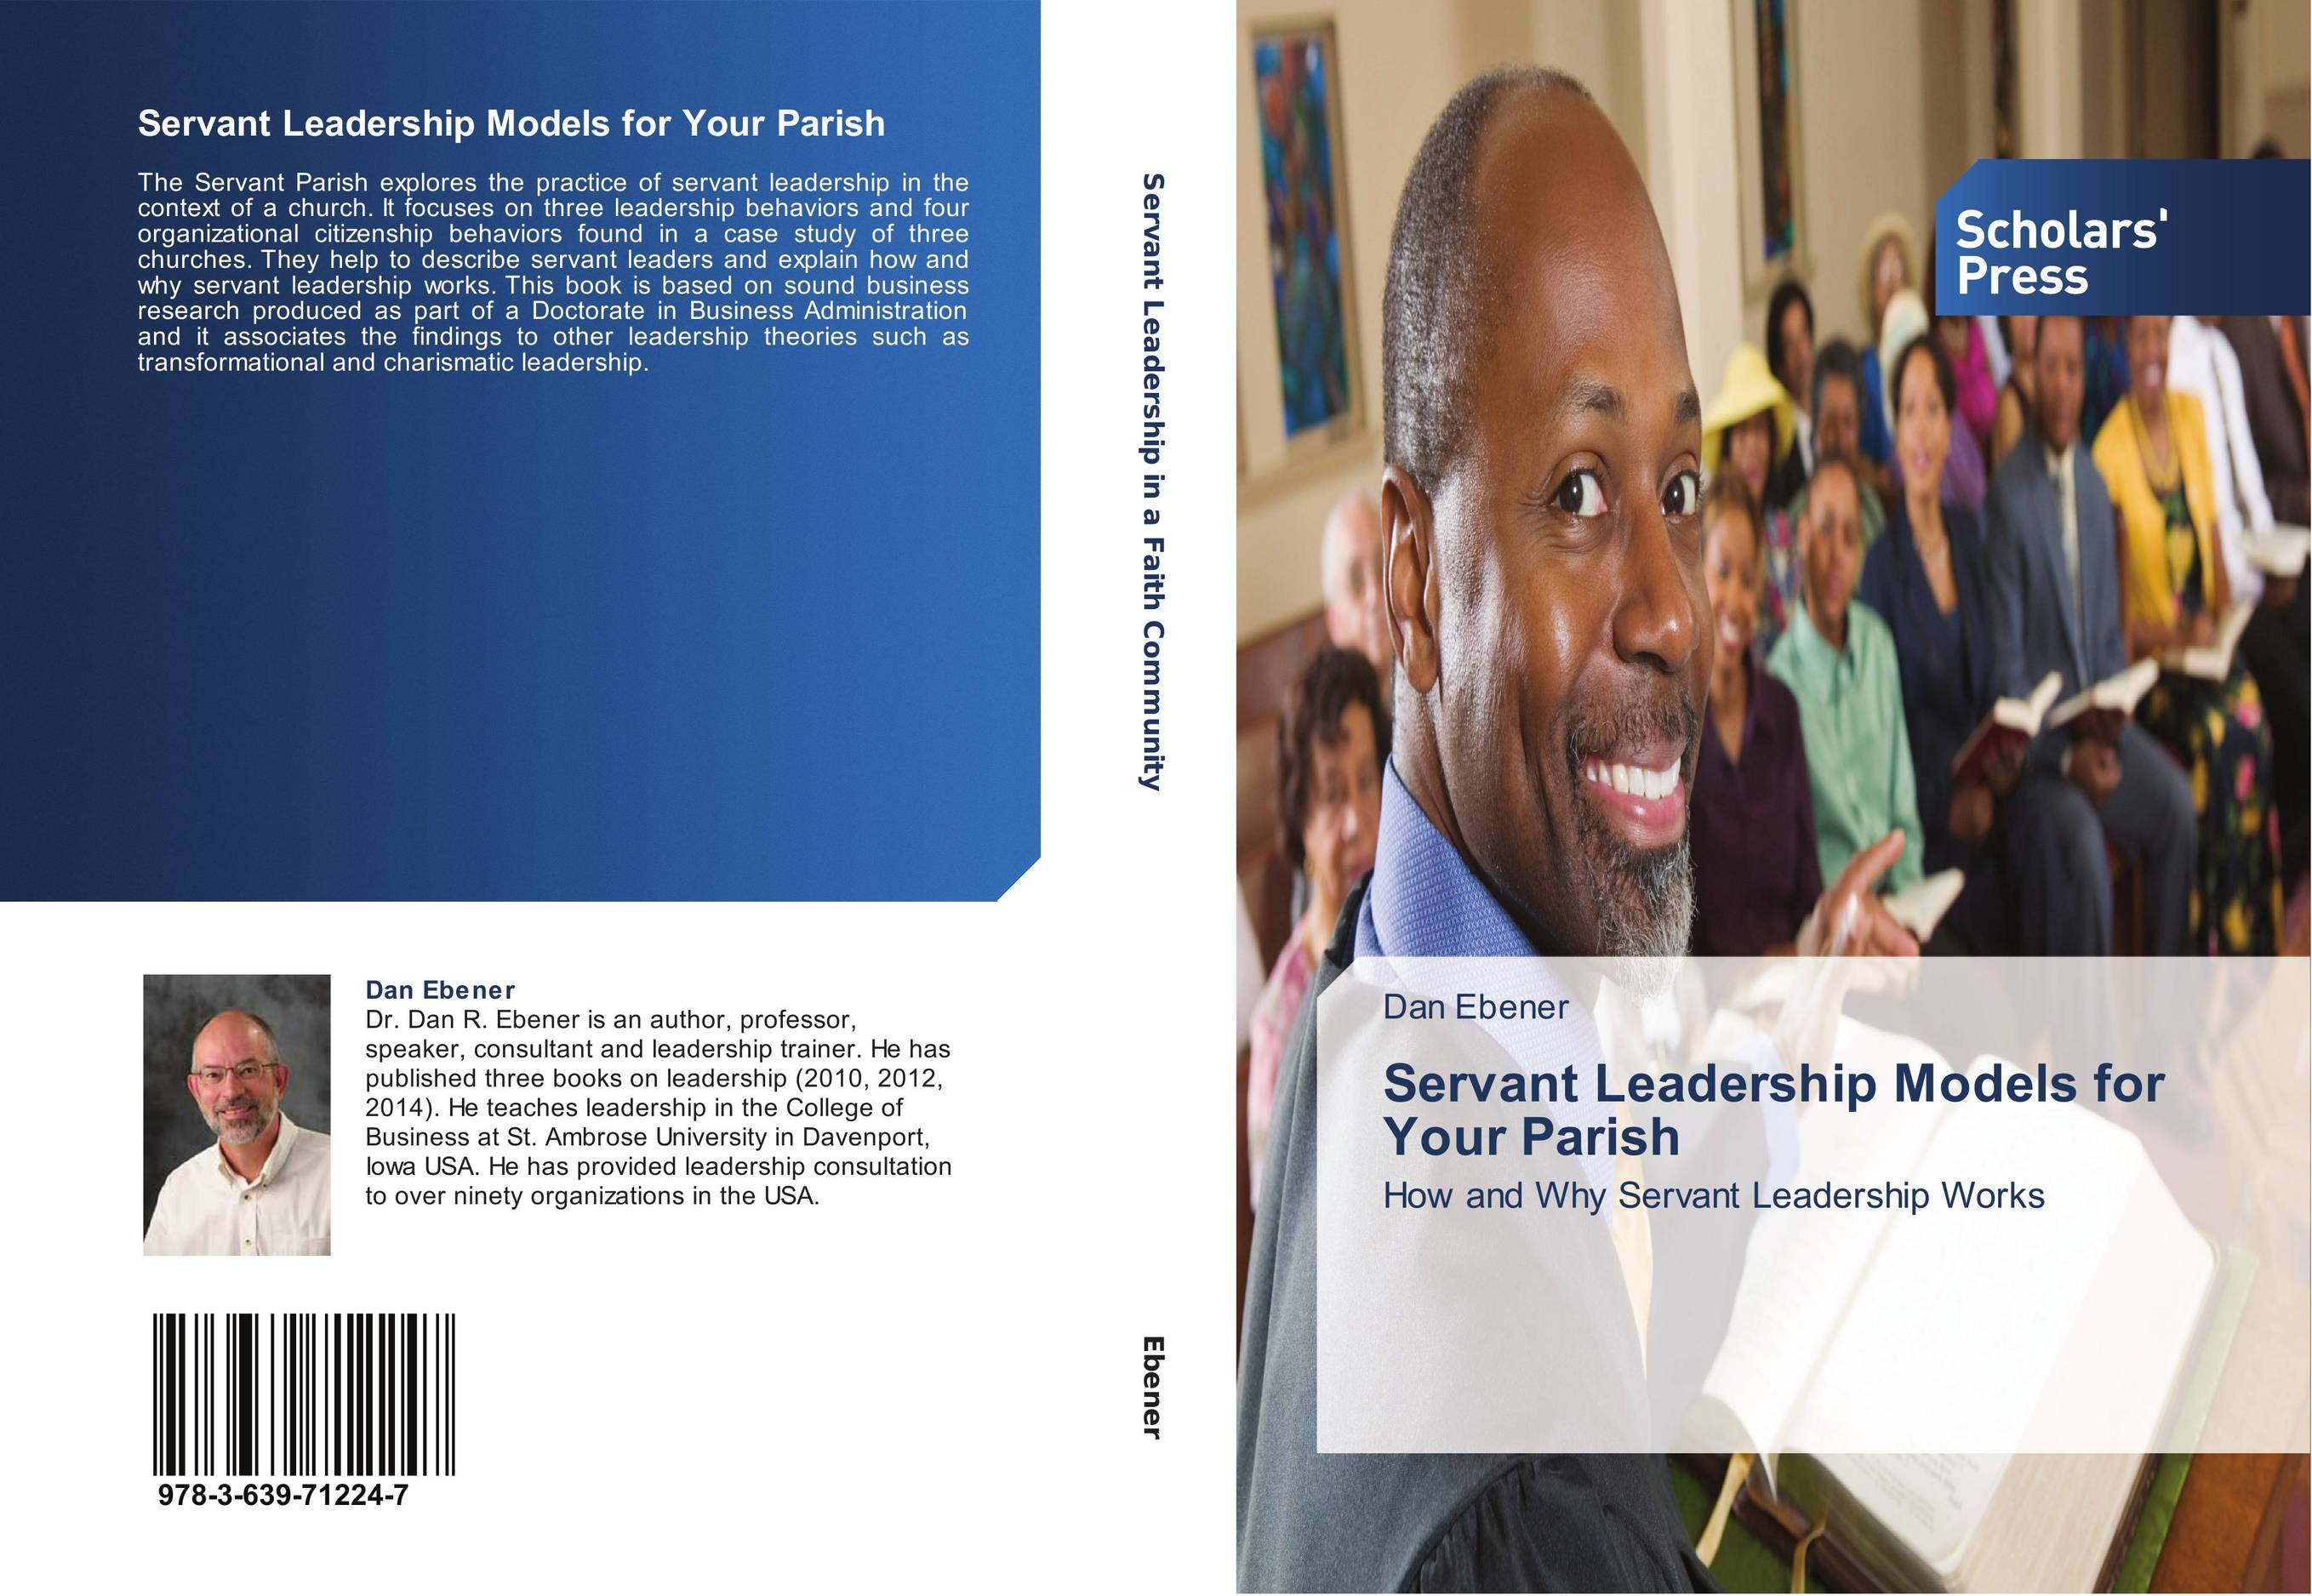 are teachers servant leaders You can tell the author has a clear, genuine desire to make a positive impact the problem with this book is the immense amount of fluff with little, if any, practical advice, making it a bland read if you're reading it with the purpose of getting advice on teaching.